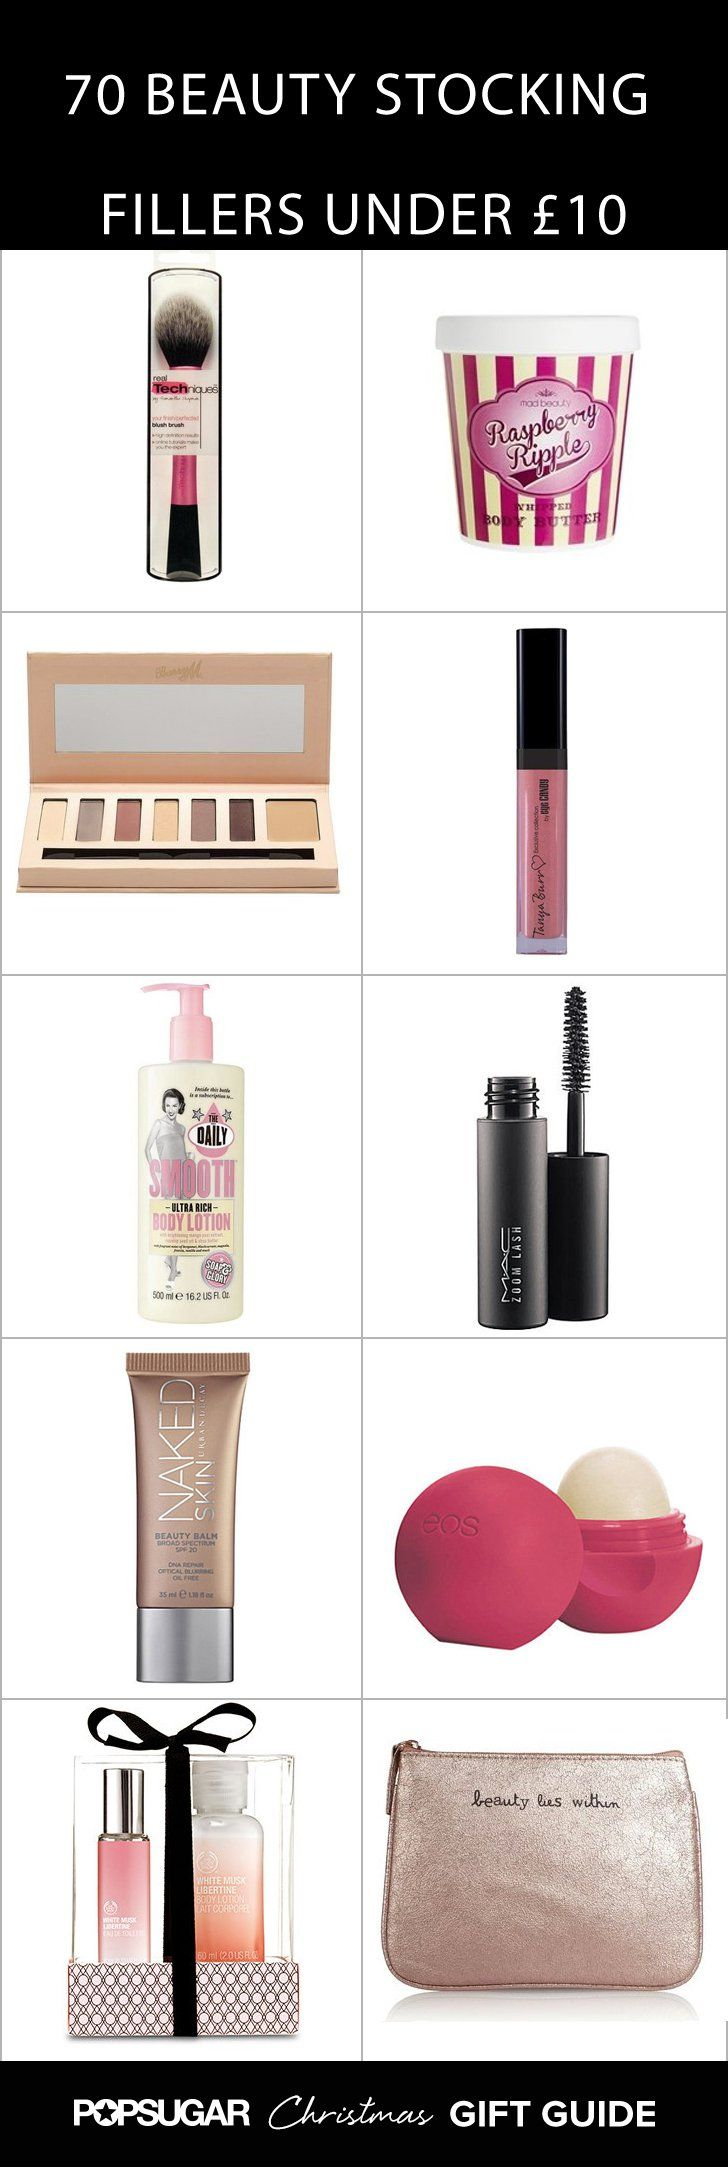 Pin for Later: 70 Fab Beauty Stocking Fillers For £10 and Under